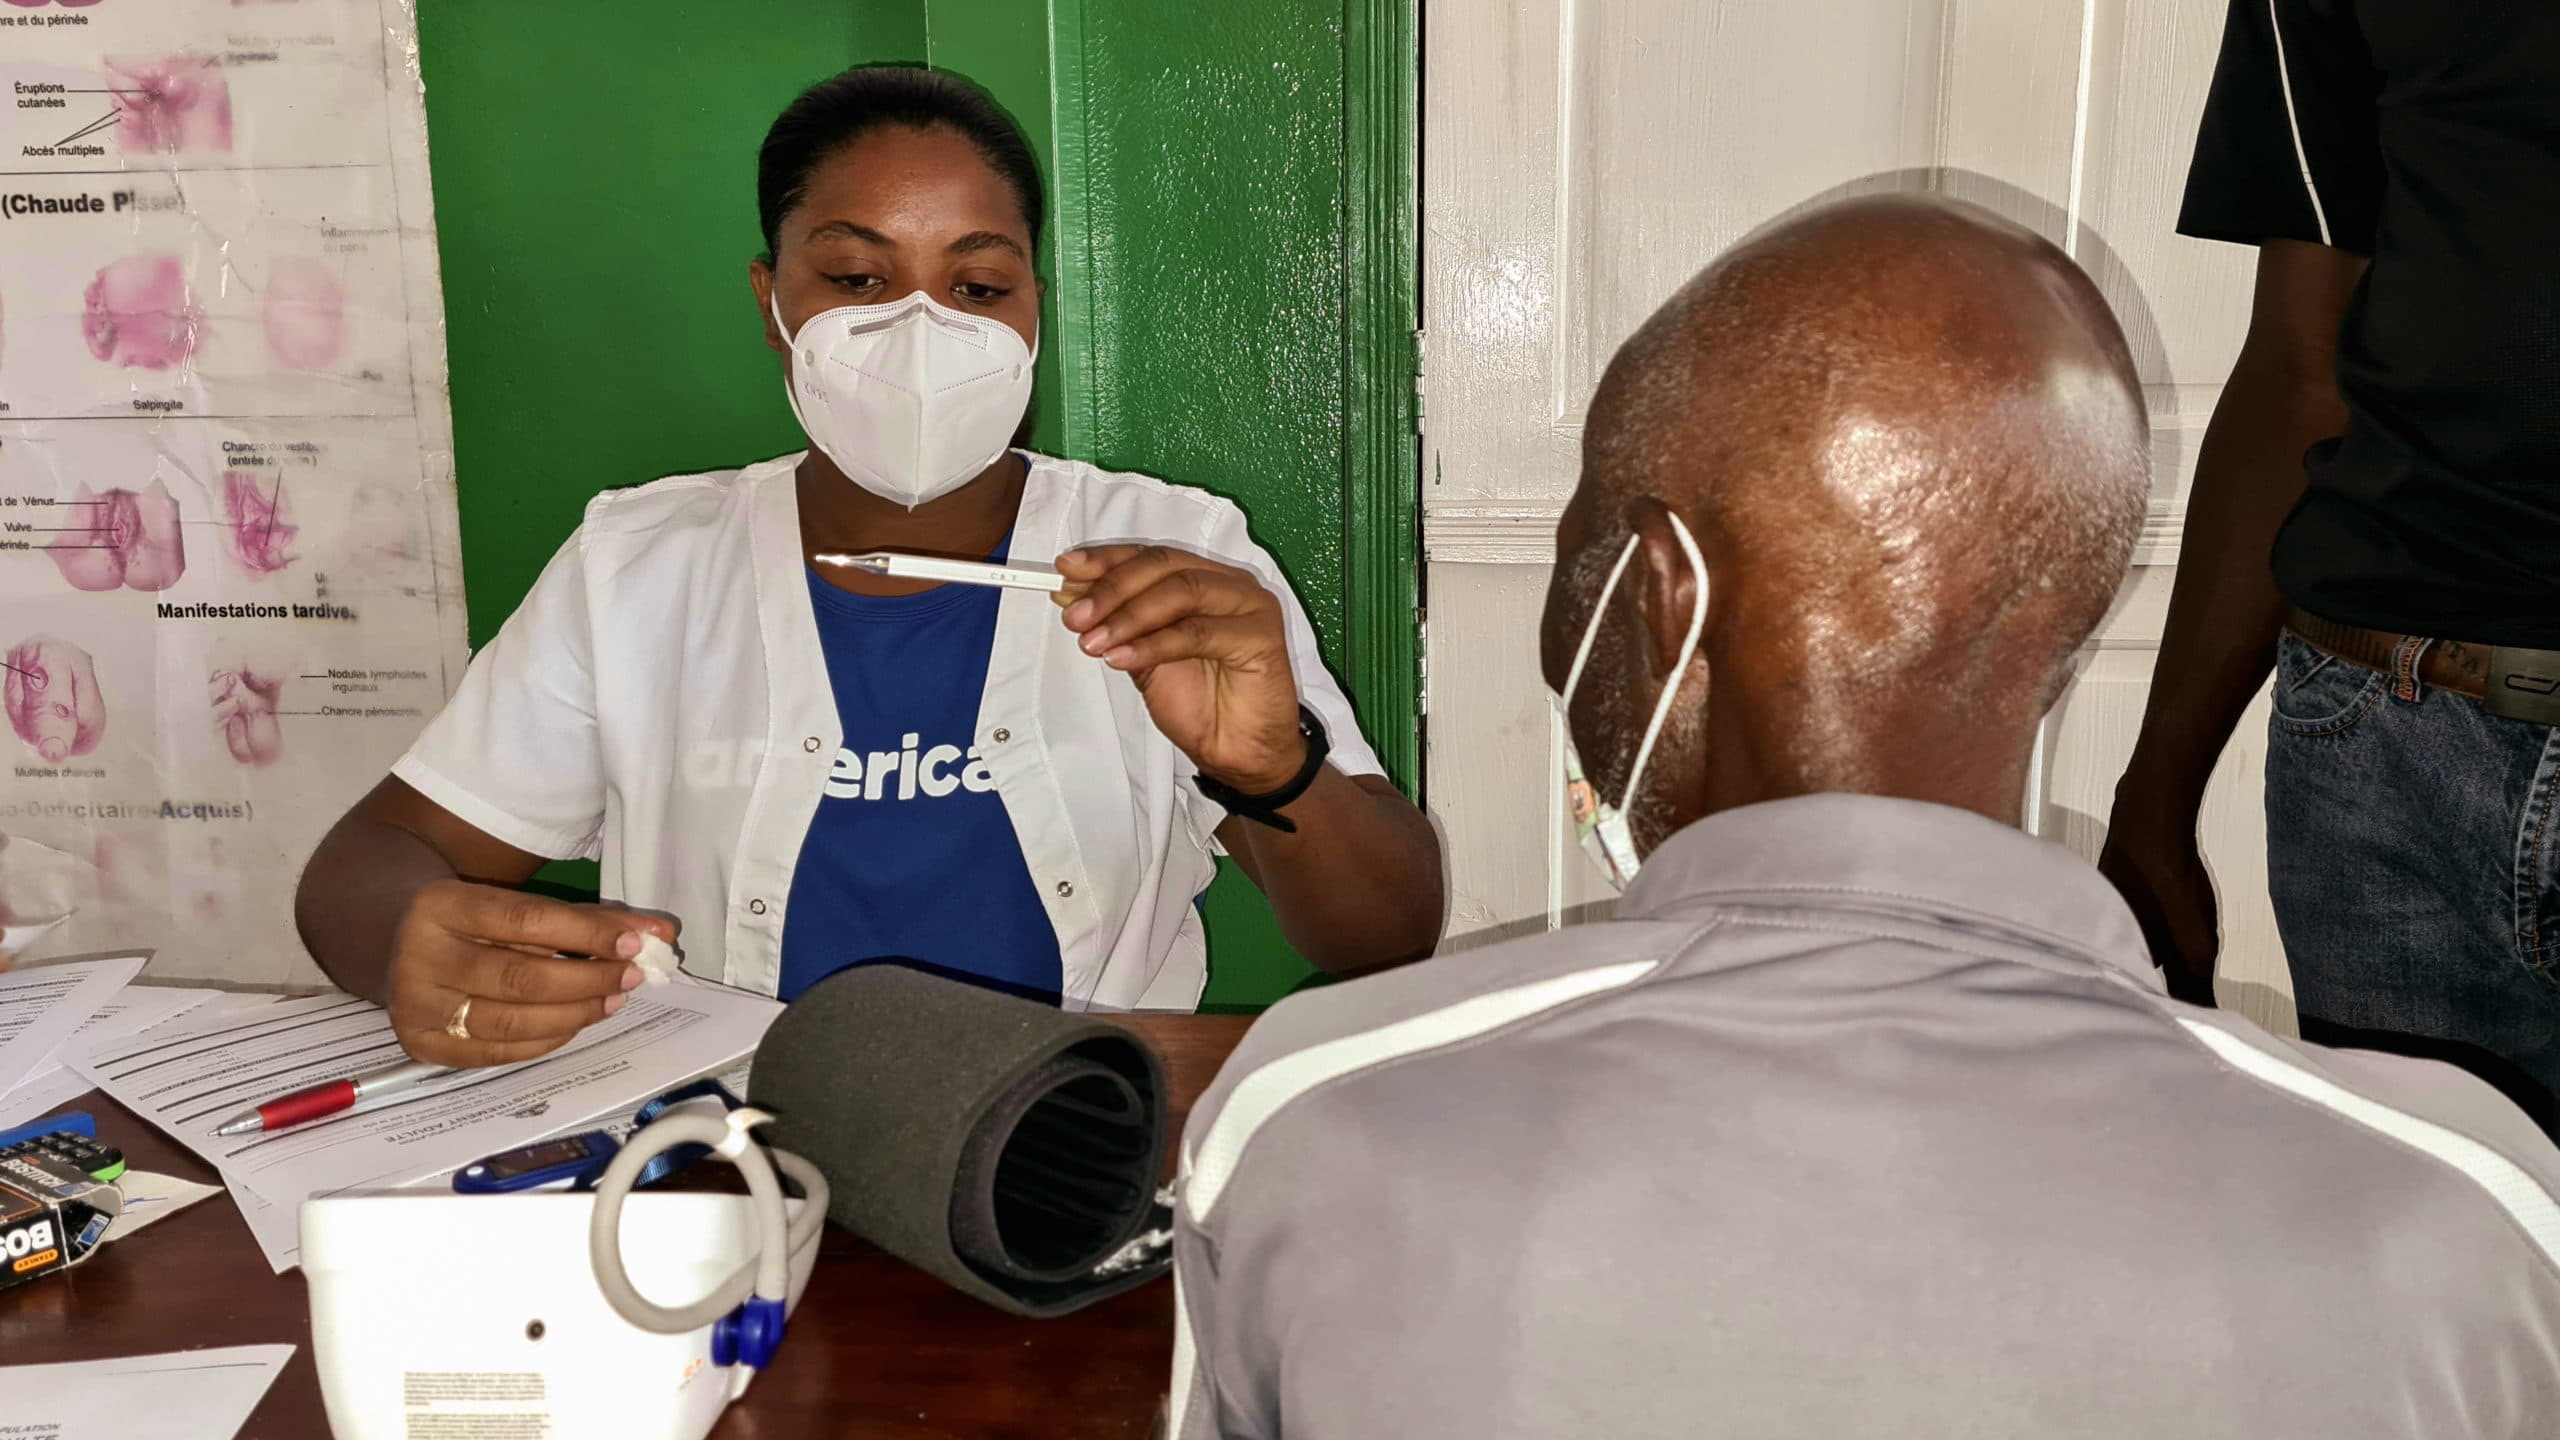 An Americares medical team member checks a patient after Haiti earthquake